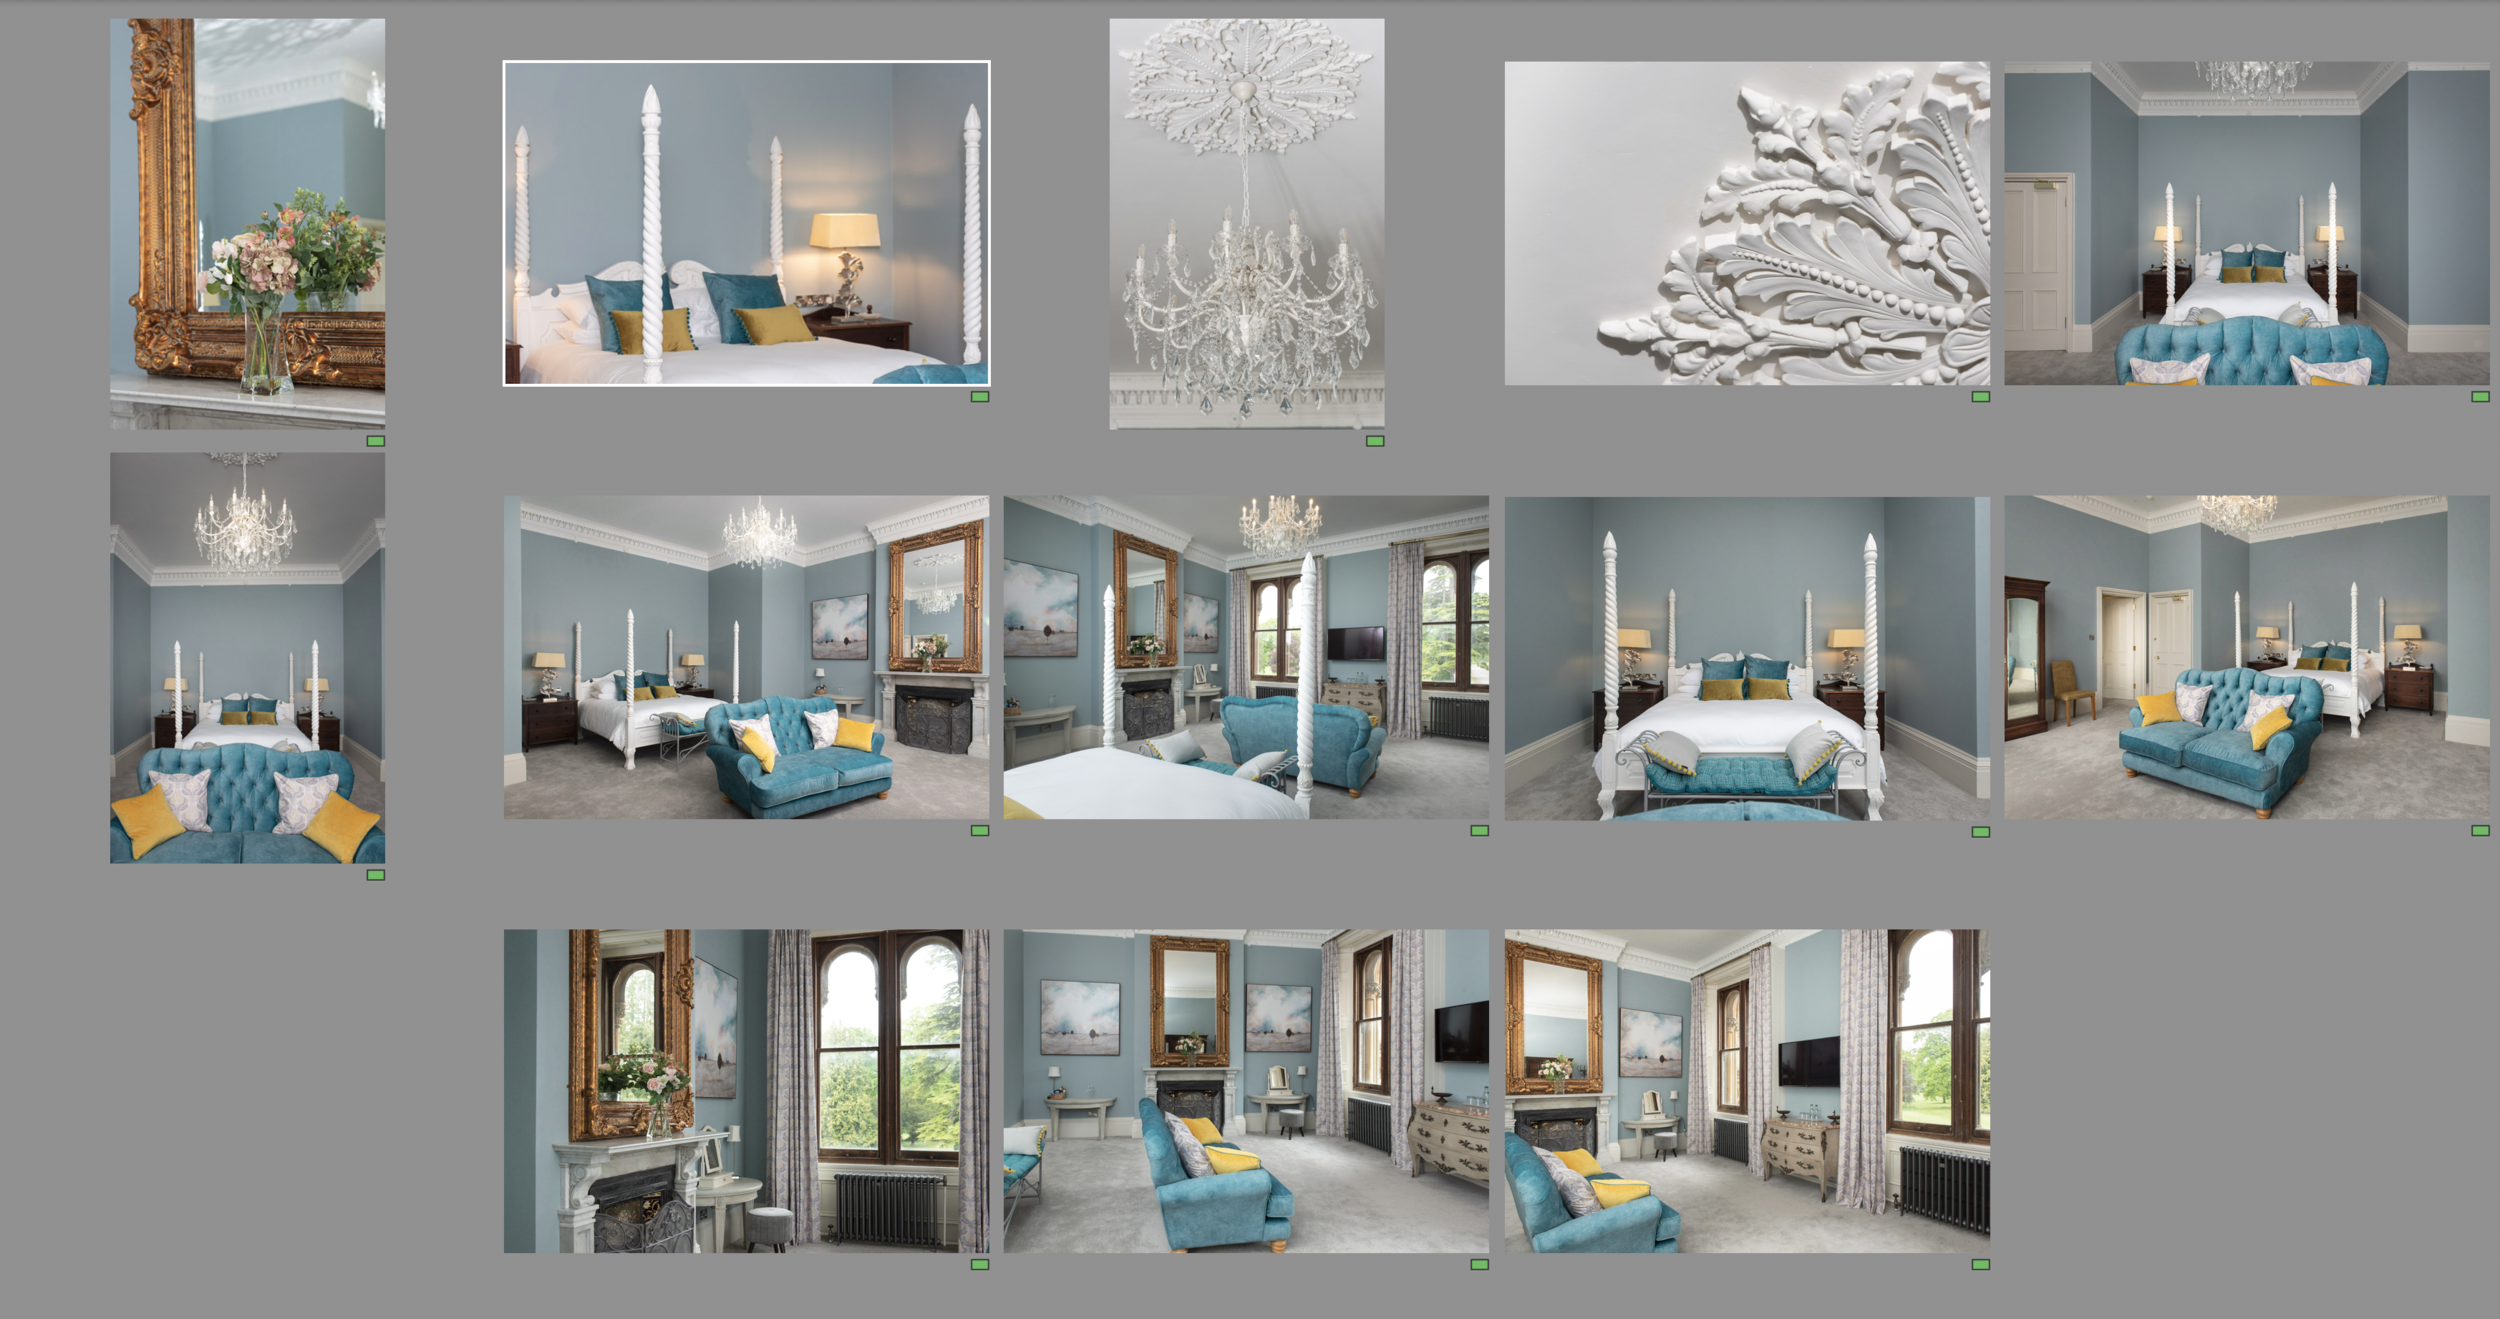 3_Collage bedroom 2.png